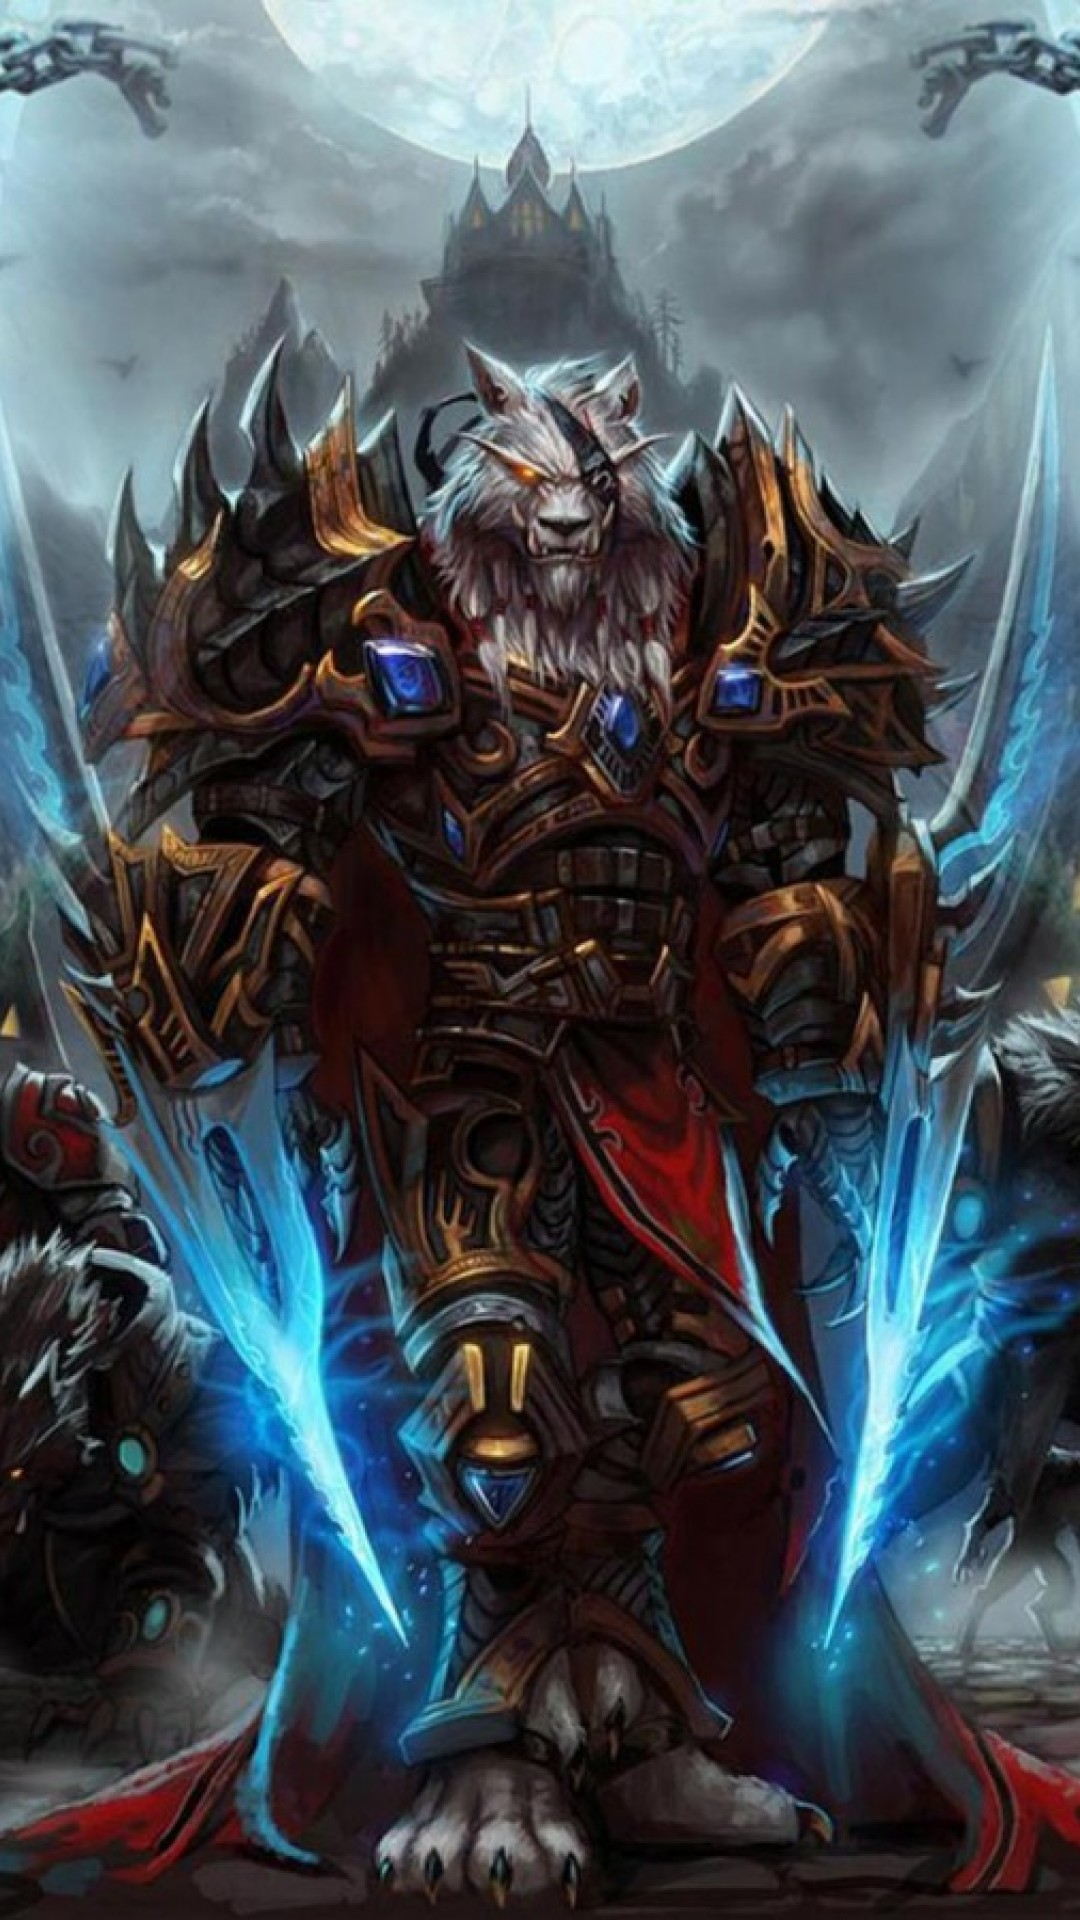 3d Live Wallpaper For Samsung Mobile Download World Of Warcraft Iphone Wallpaper Gallery